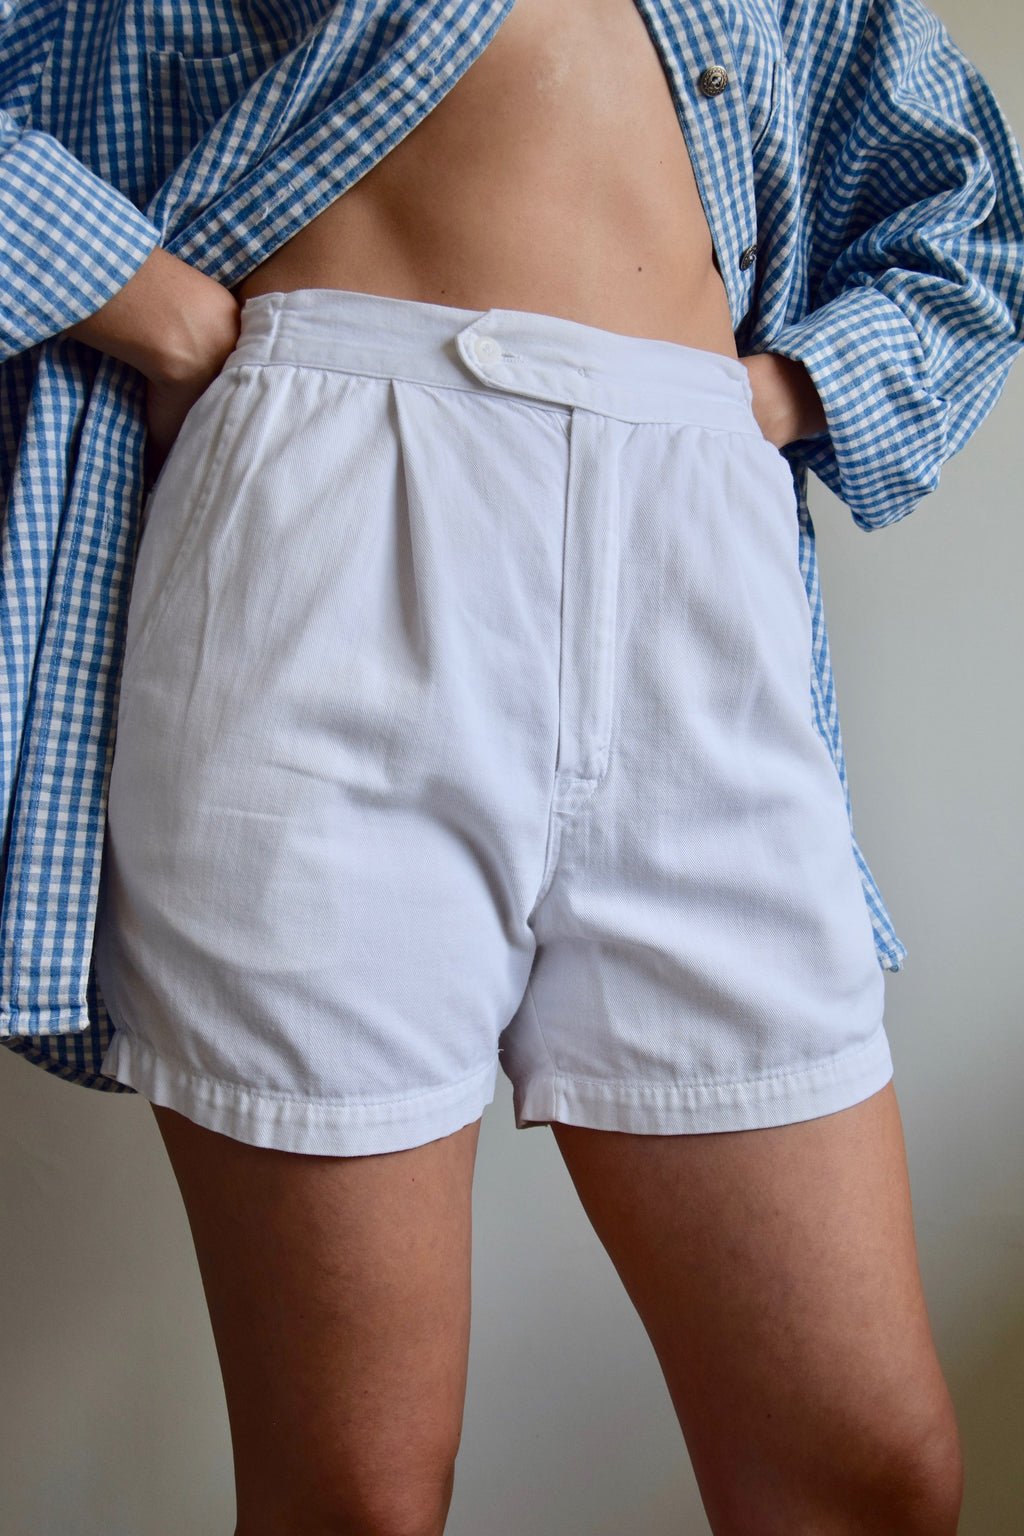 Vintage 1960's Wilson Cotton Tennis Shorts FREE SHIPPING TO THE U.S.